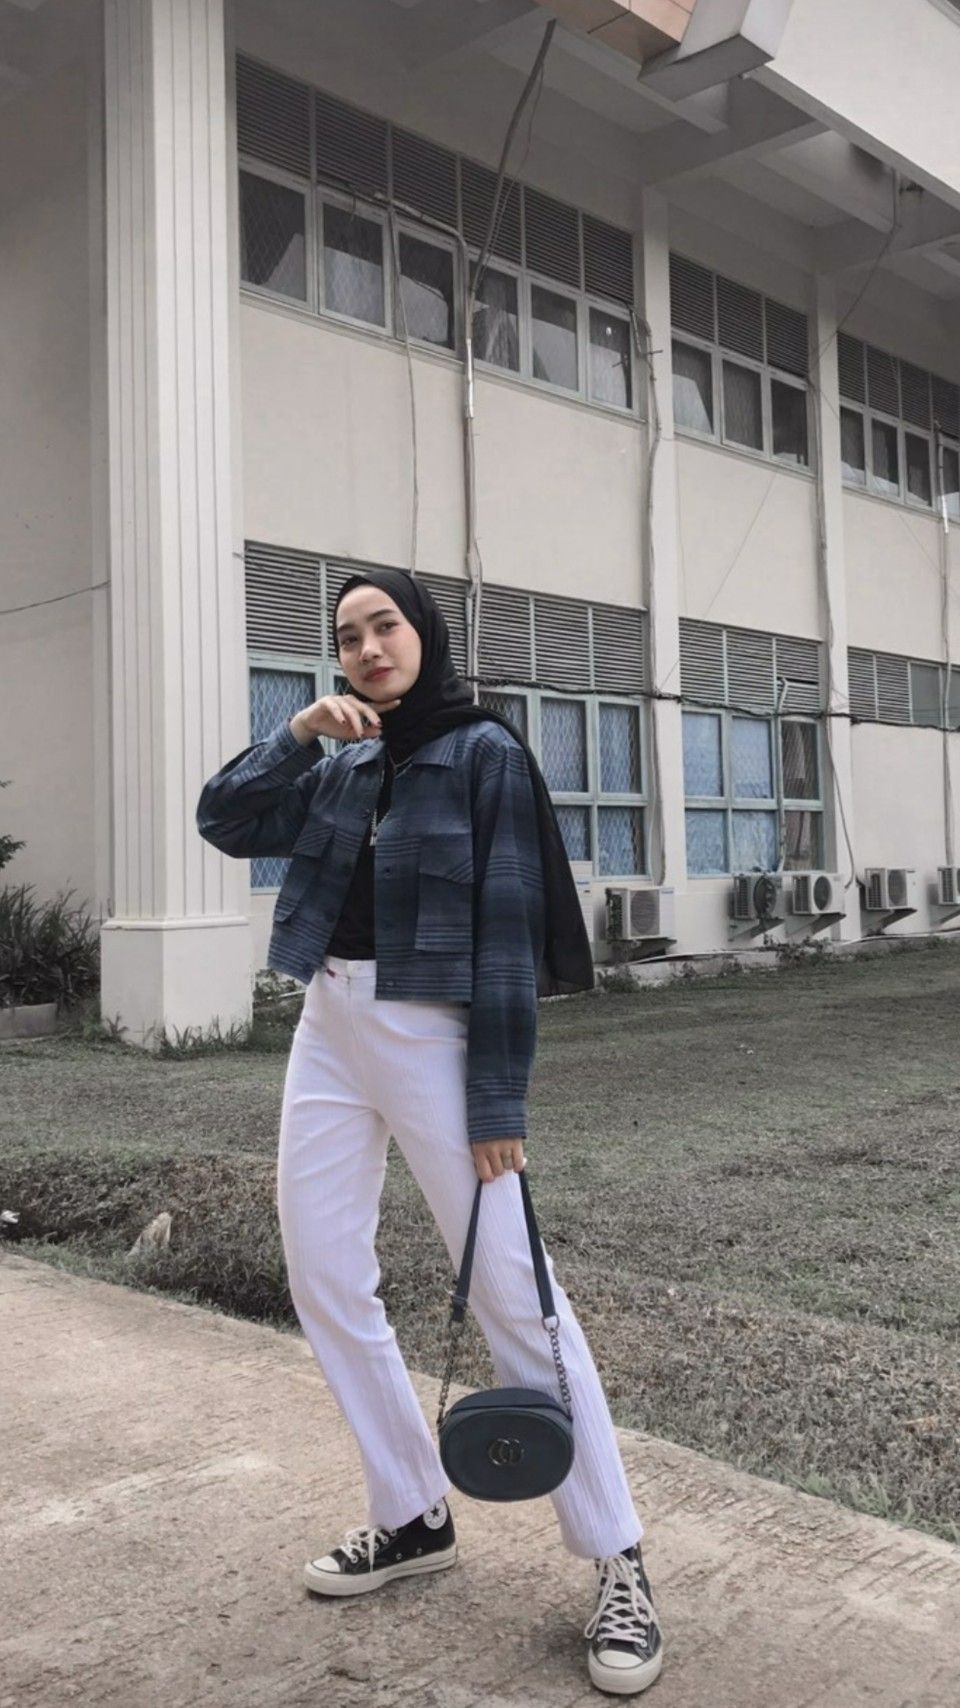 Photo of Hijab outfit of the day for teenager 2020 #ootd #hotd #hijablook